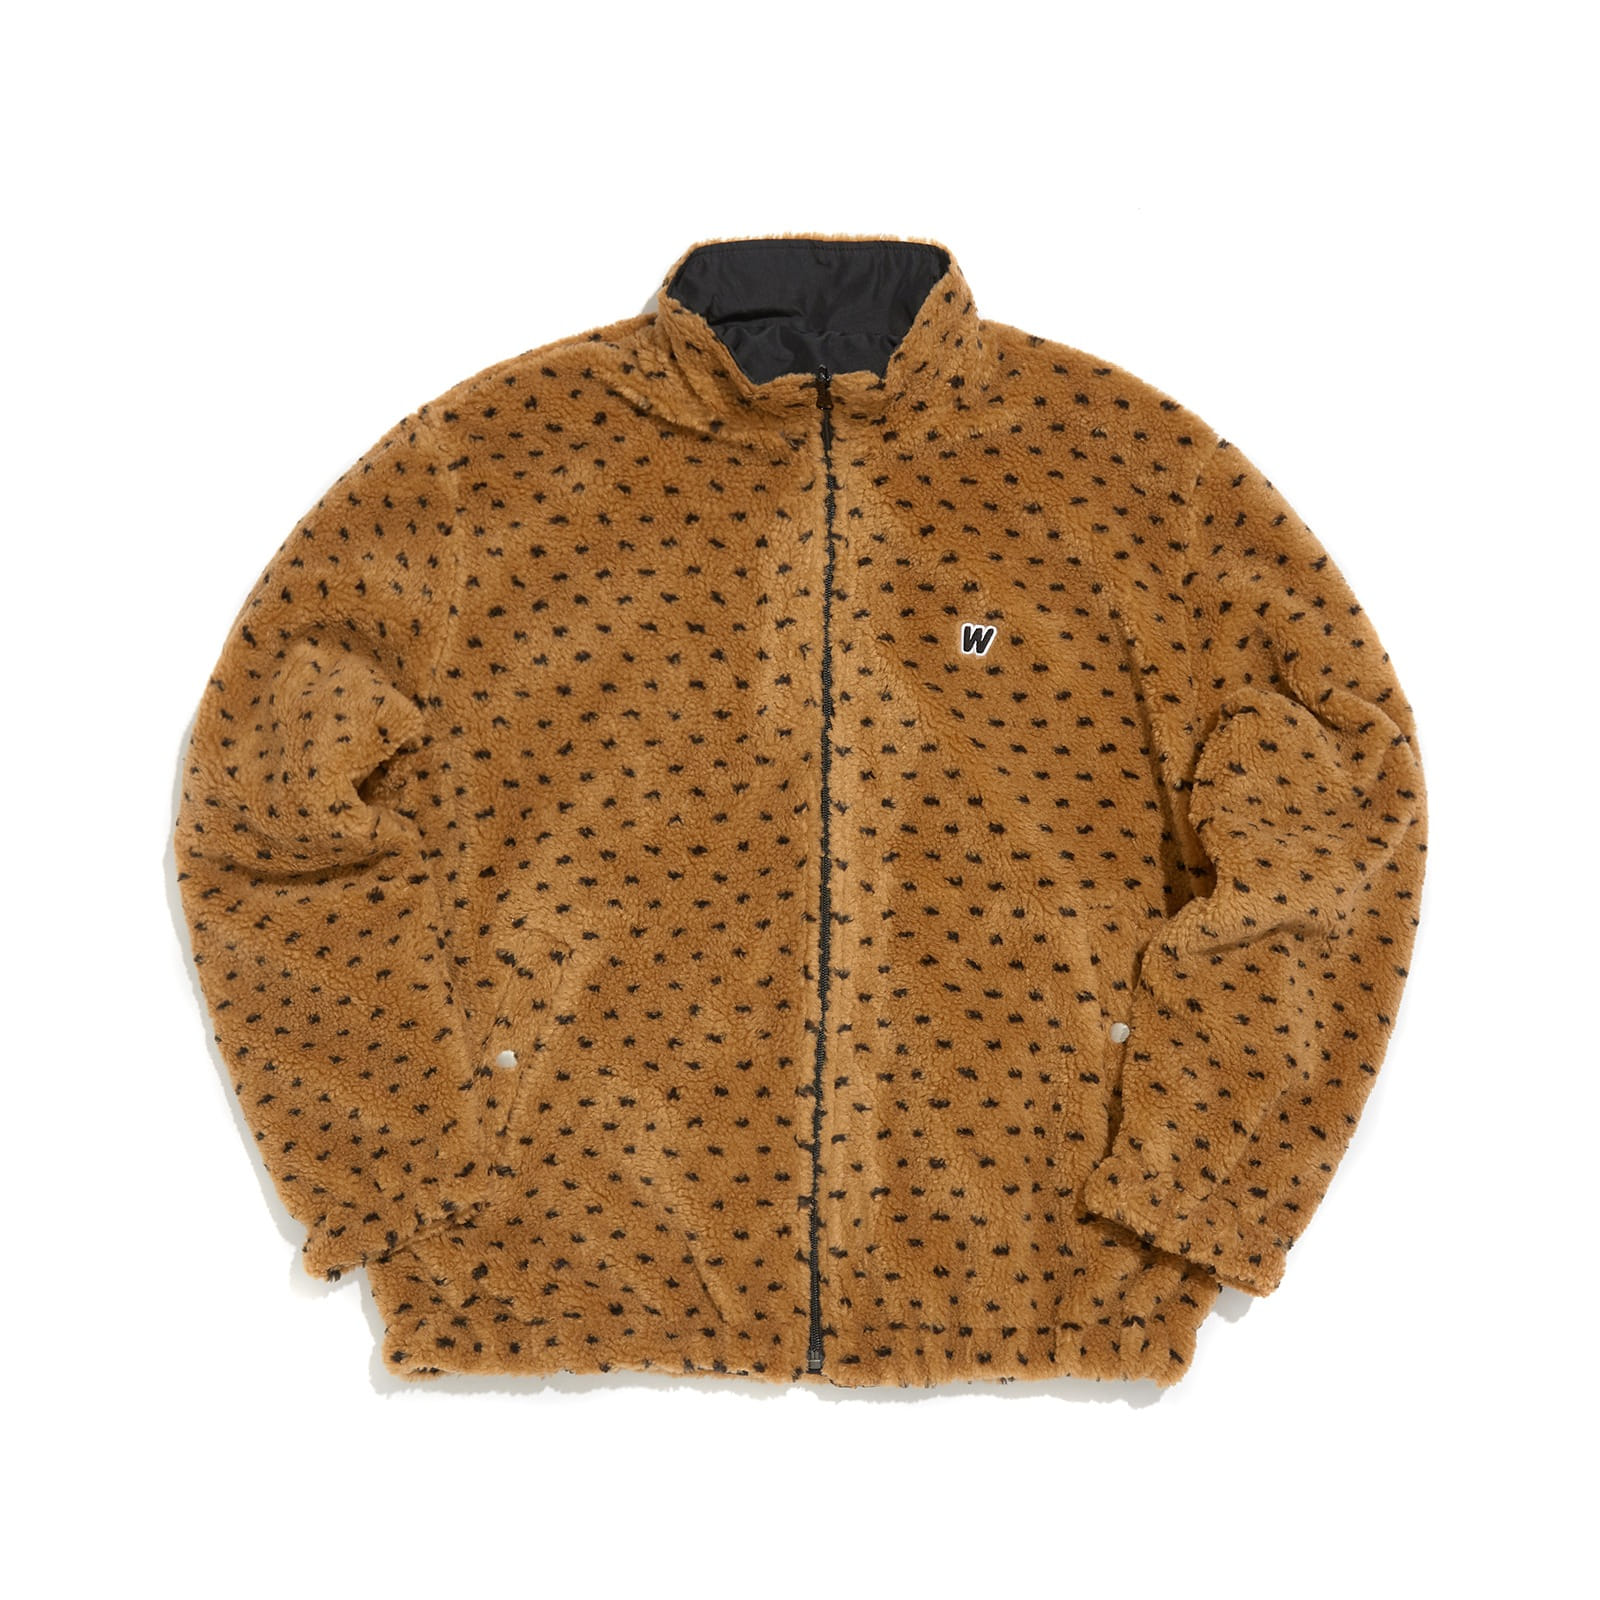 PIXEL REVERSIBLE DUMBLE JACKET (BROWN)